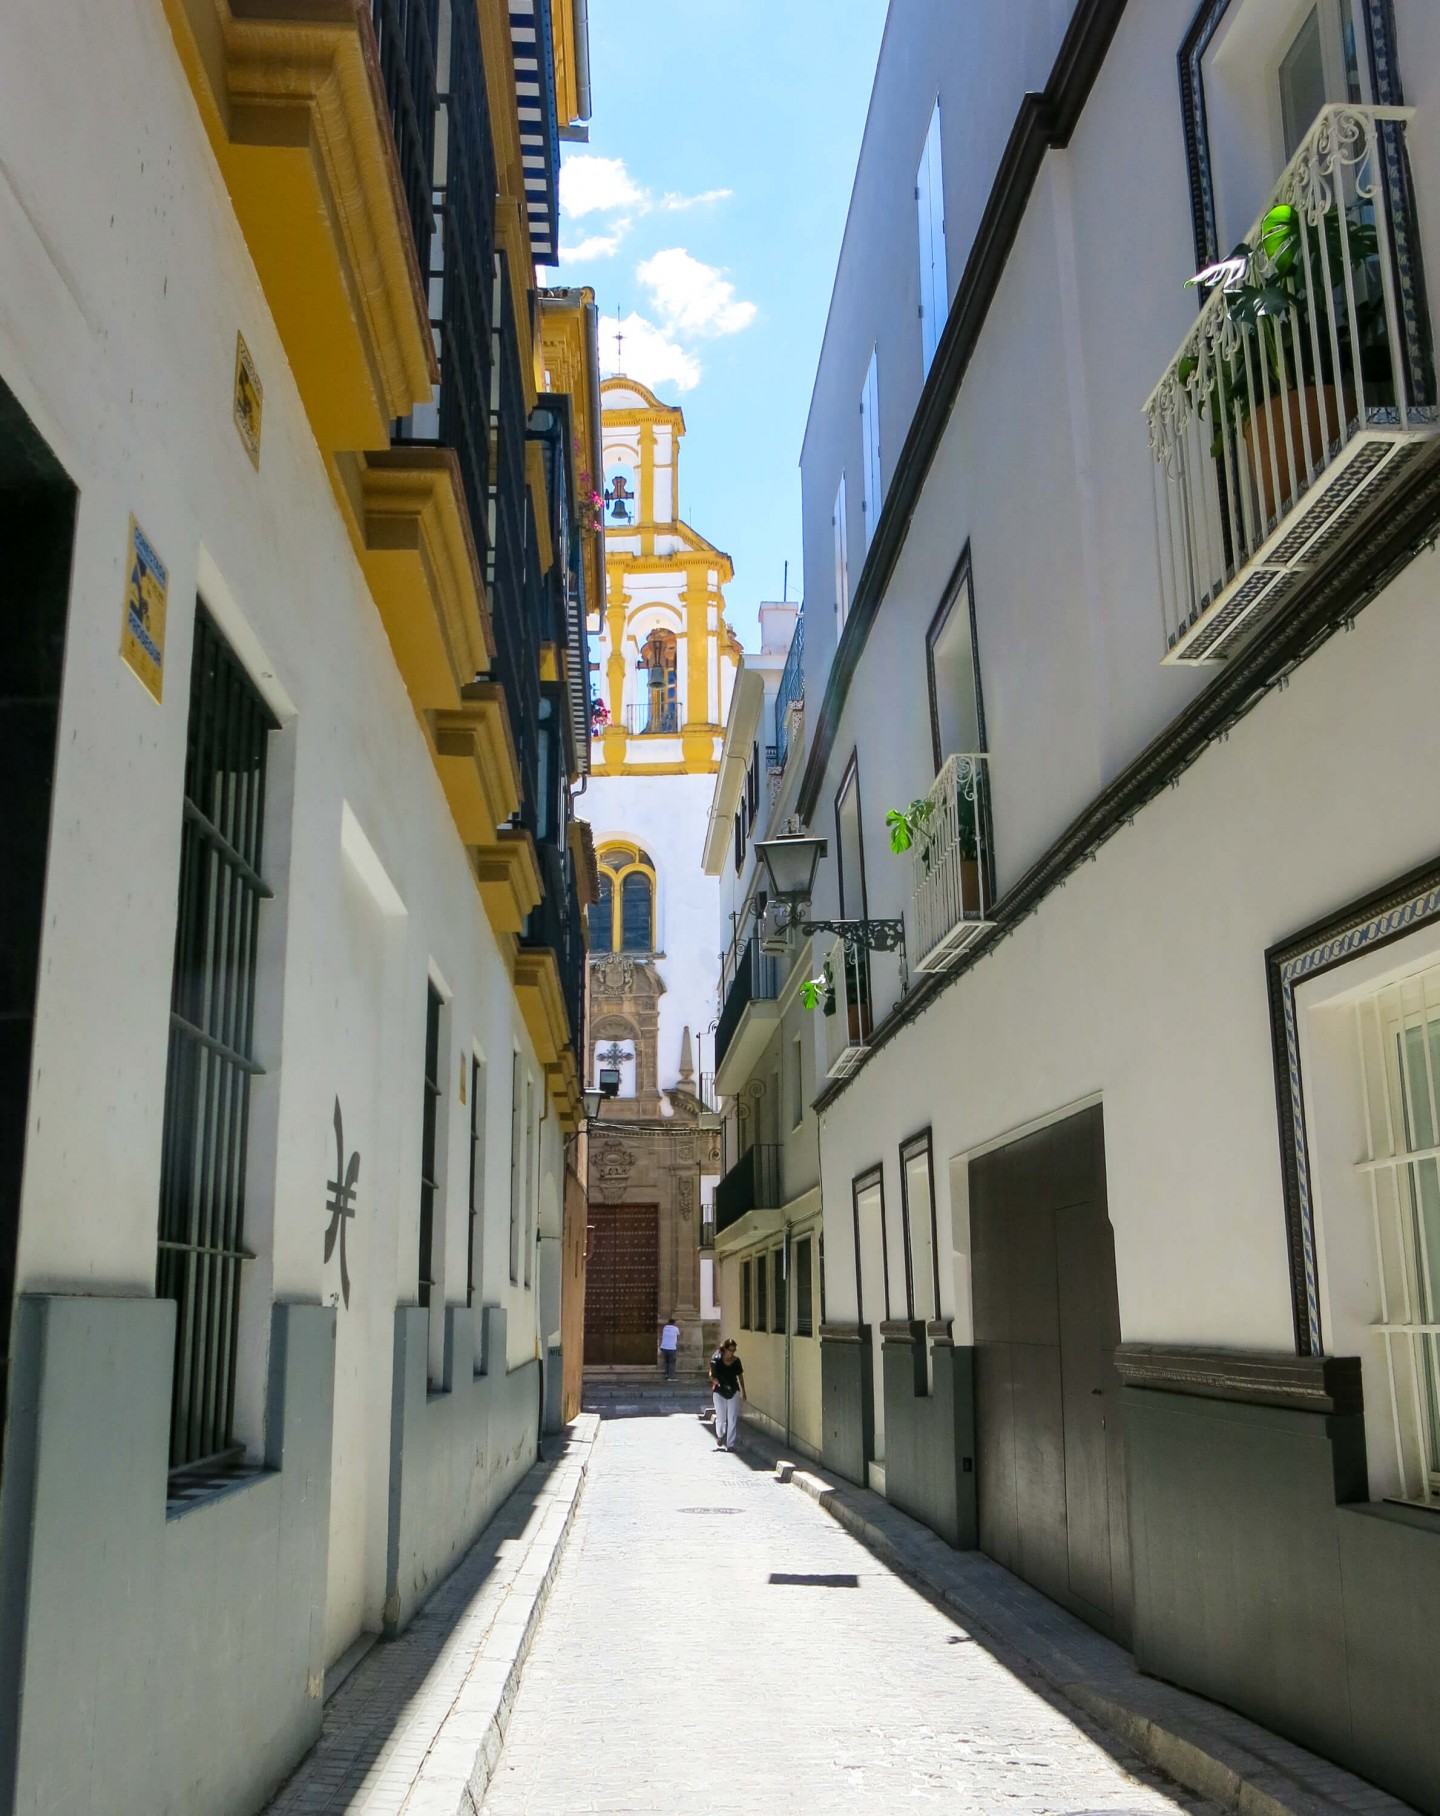 Hotel in the heart of Seville Old Town with a swimming pool on the roof terrace. And it's great value too!